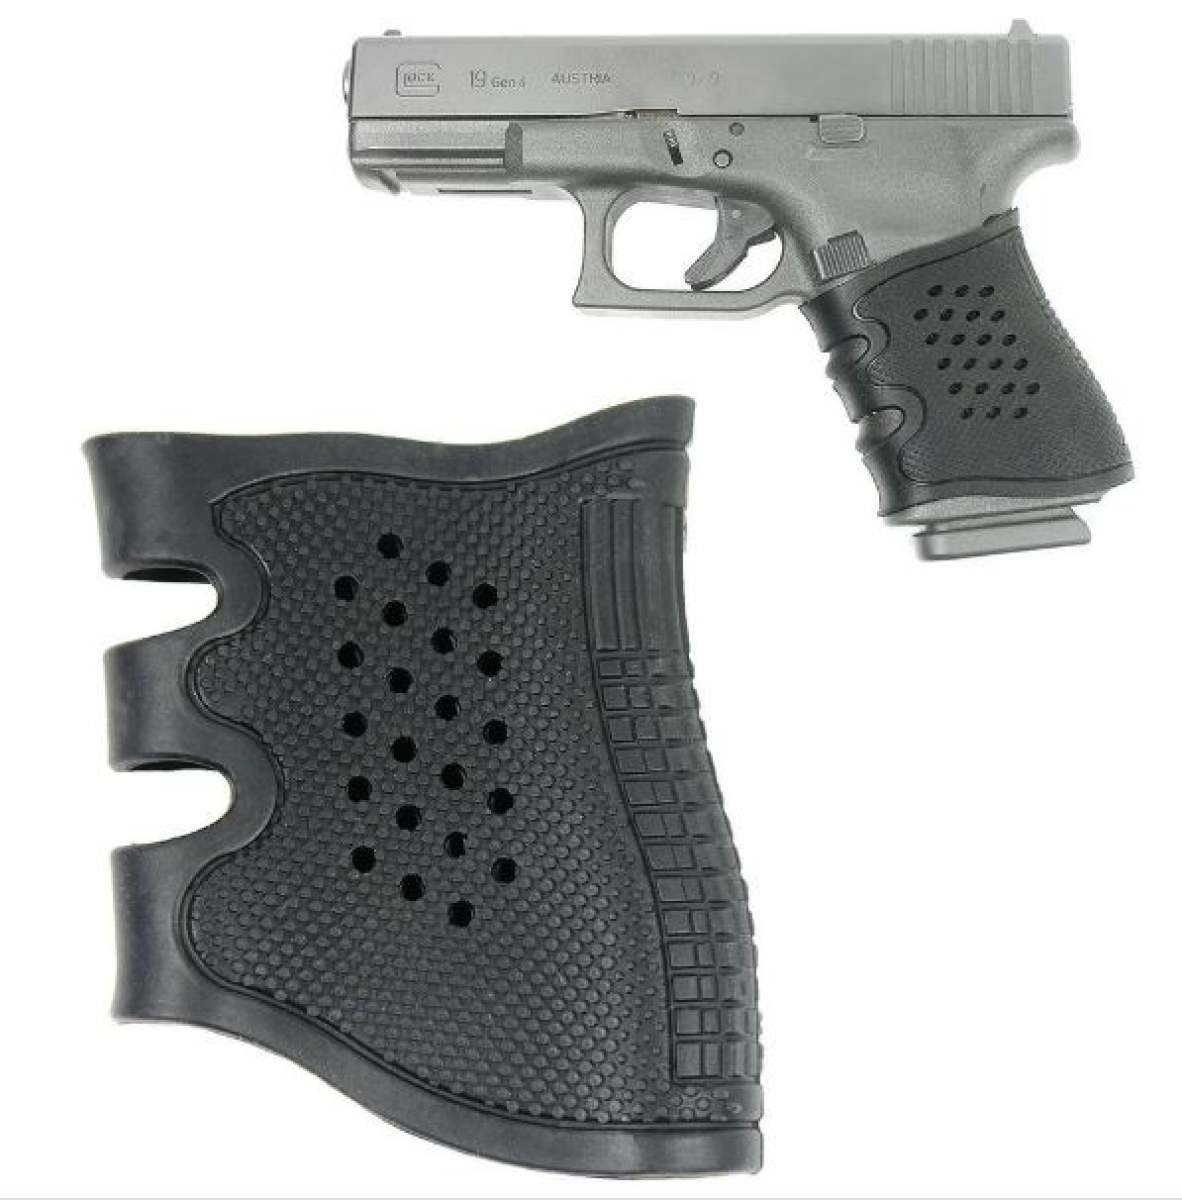 Anti Slip Black Rubber Grip Sleeve For Glack and other 9mm